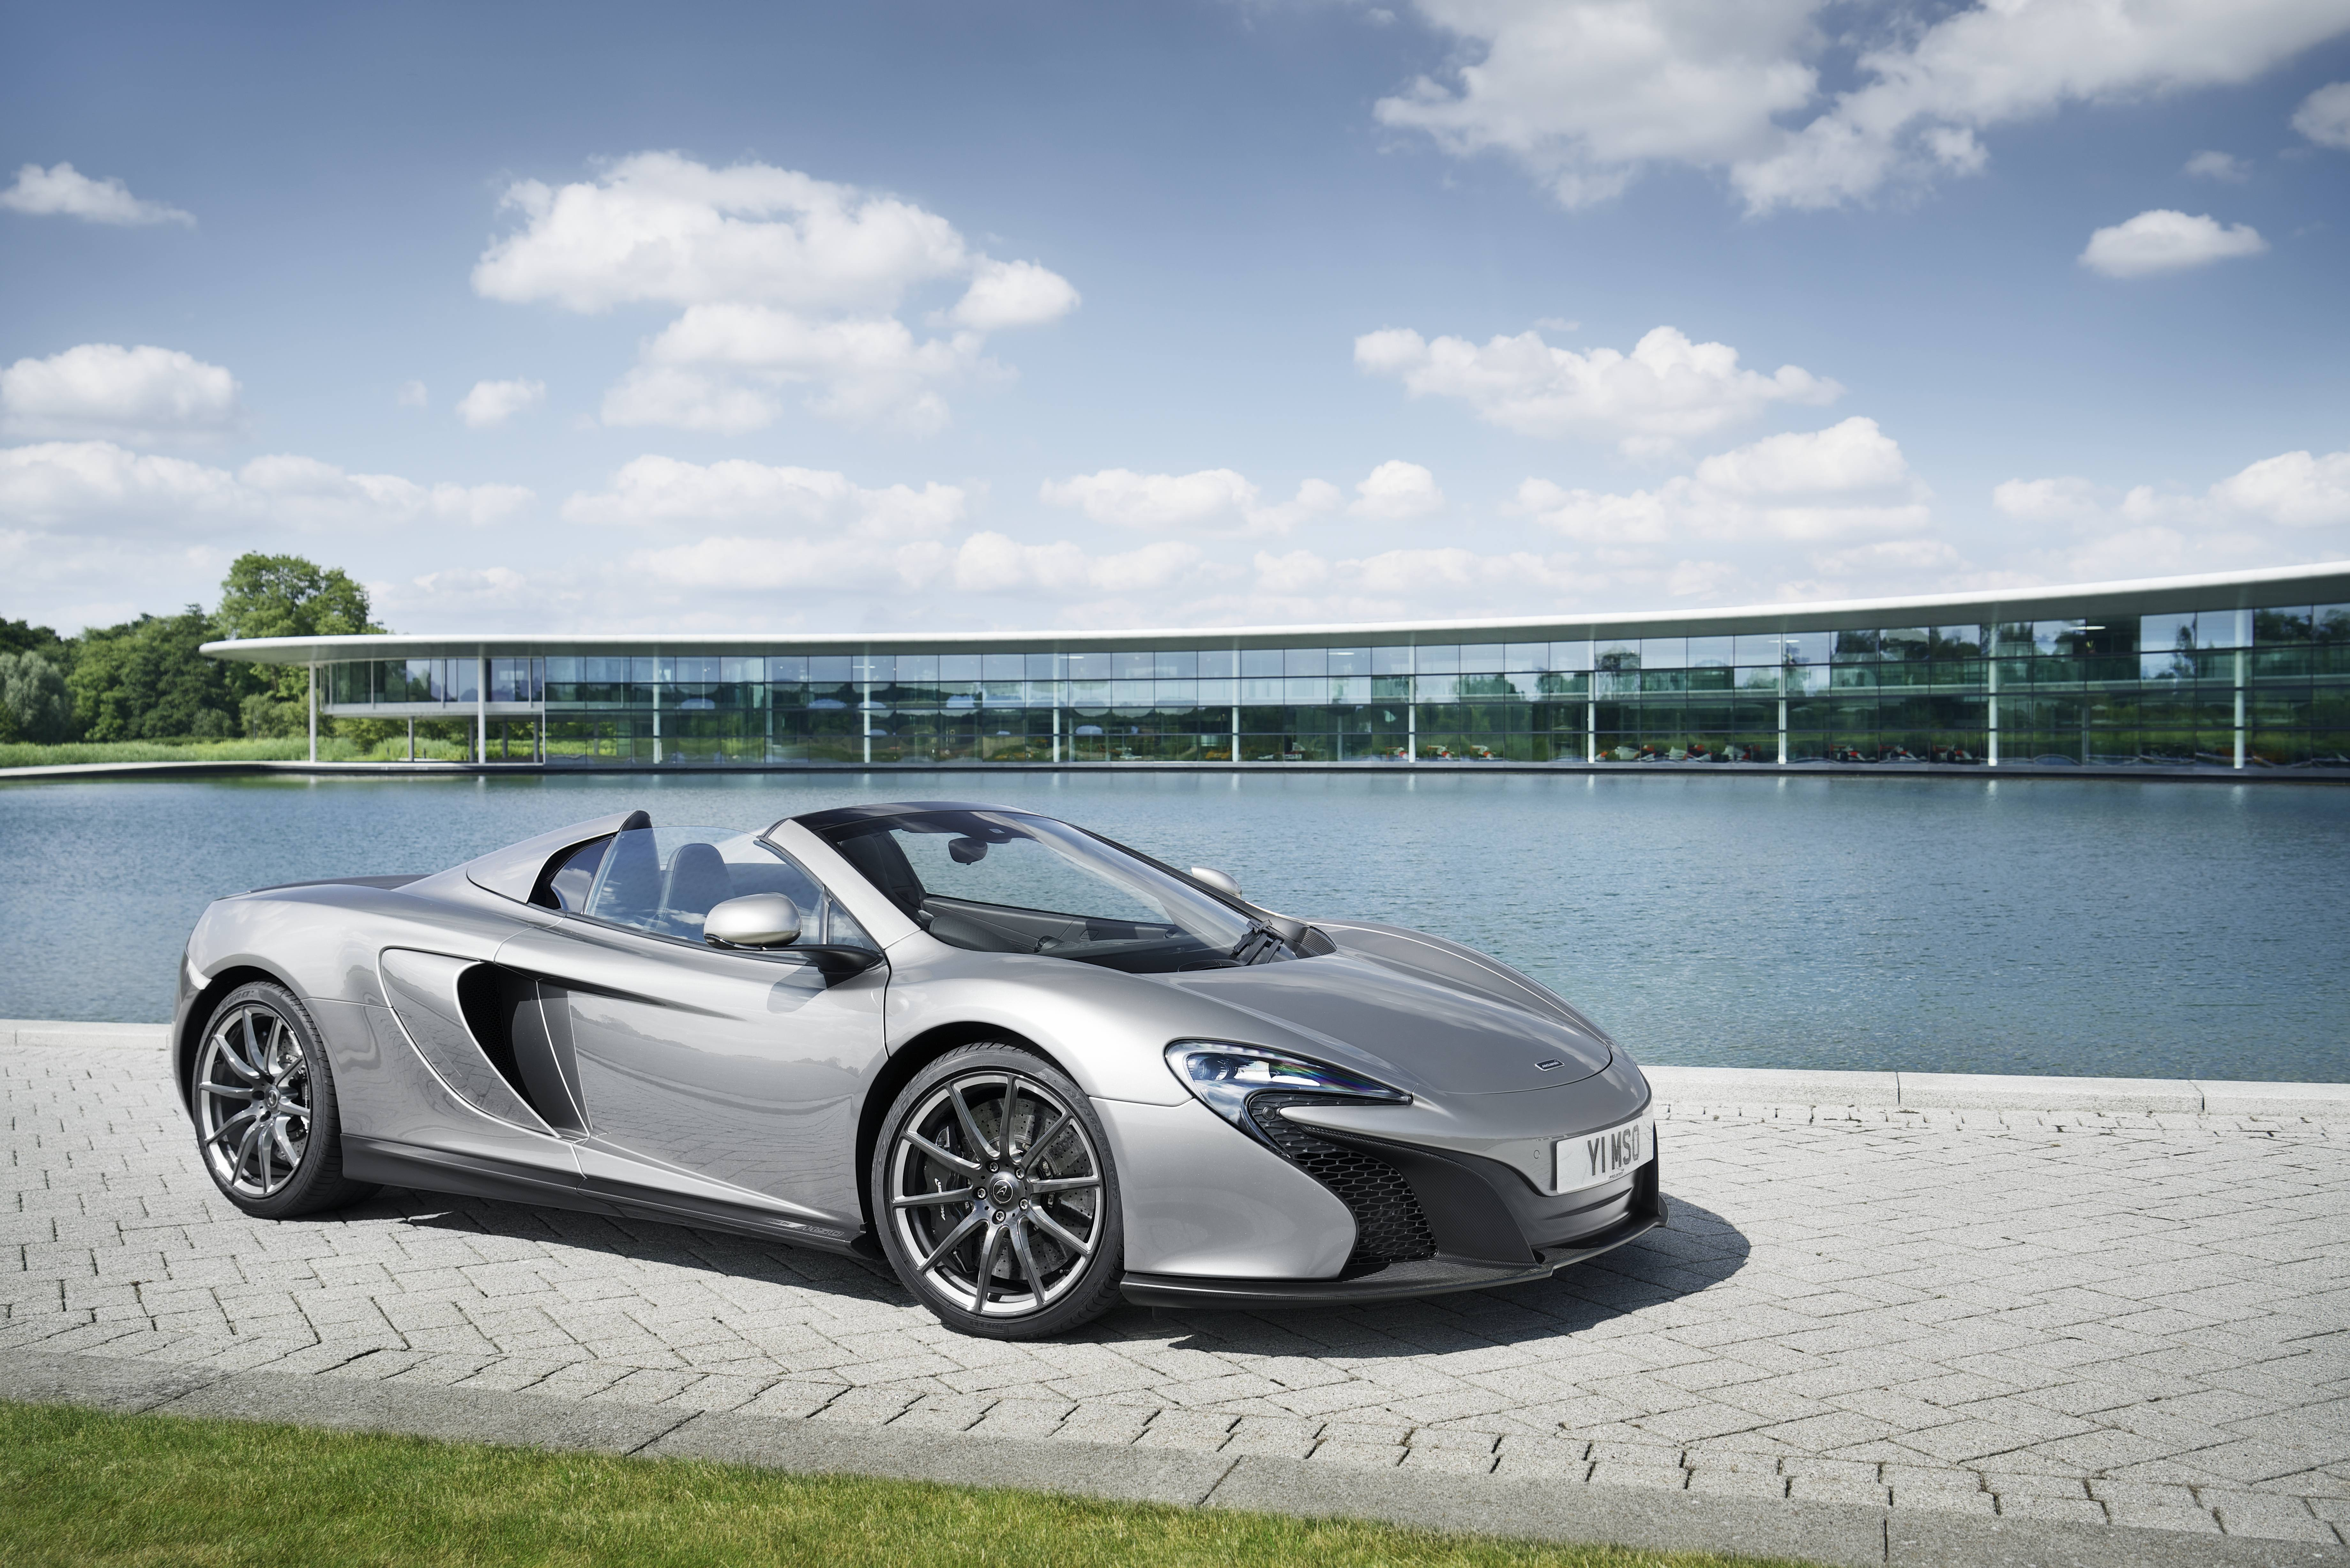 The MSO 650S Spider